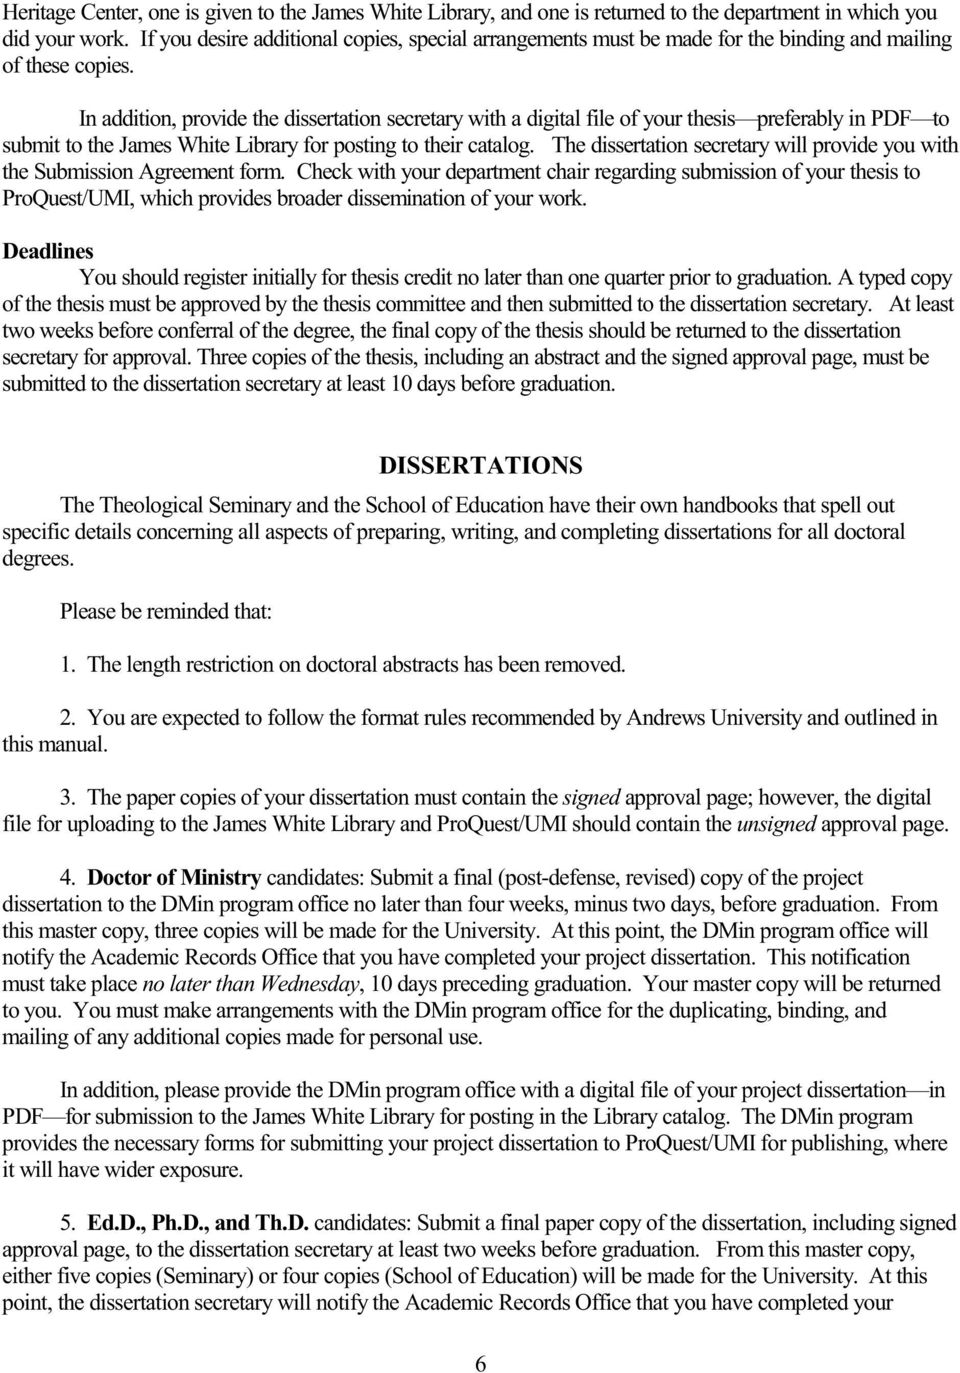 Applied Dissertation Procedures Manual